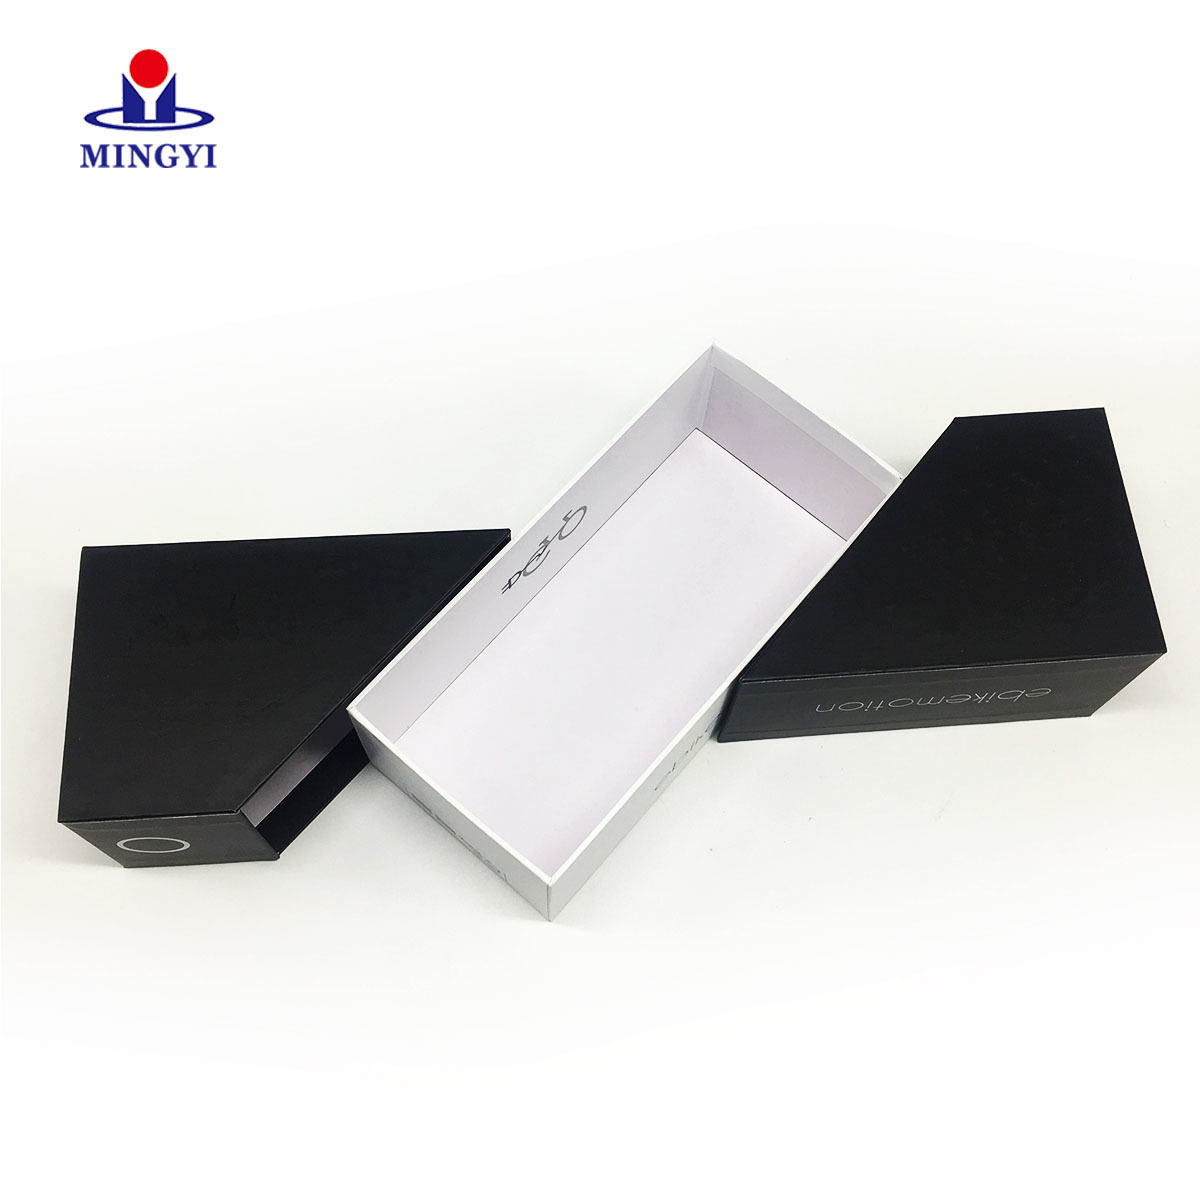 Cardboard gift box with double lid